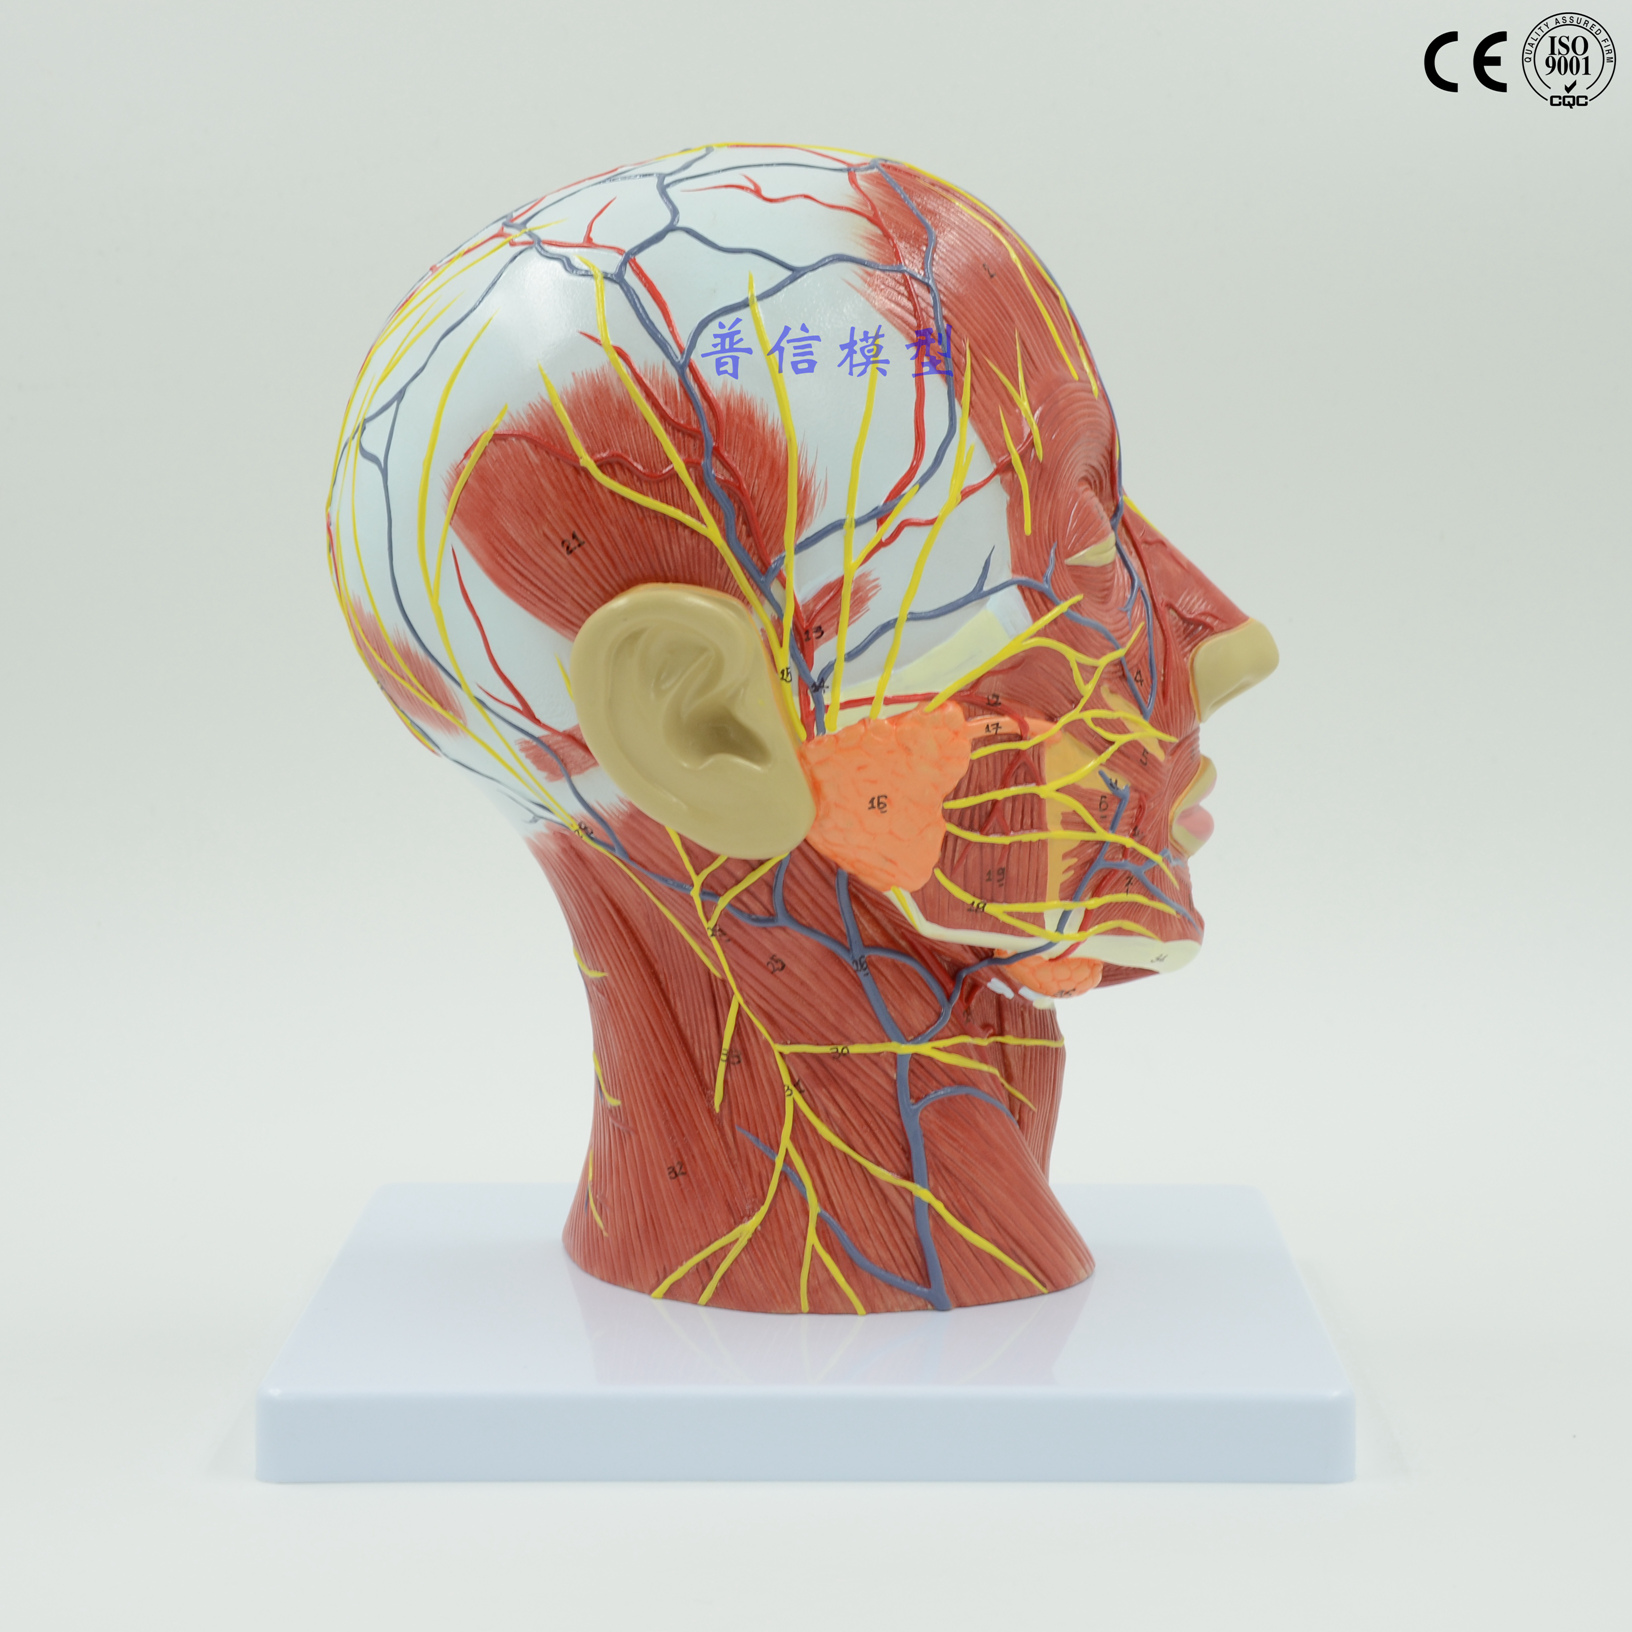 Aliexpress.com : Buy Free shipping&The crystal brain anatomical ...